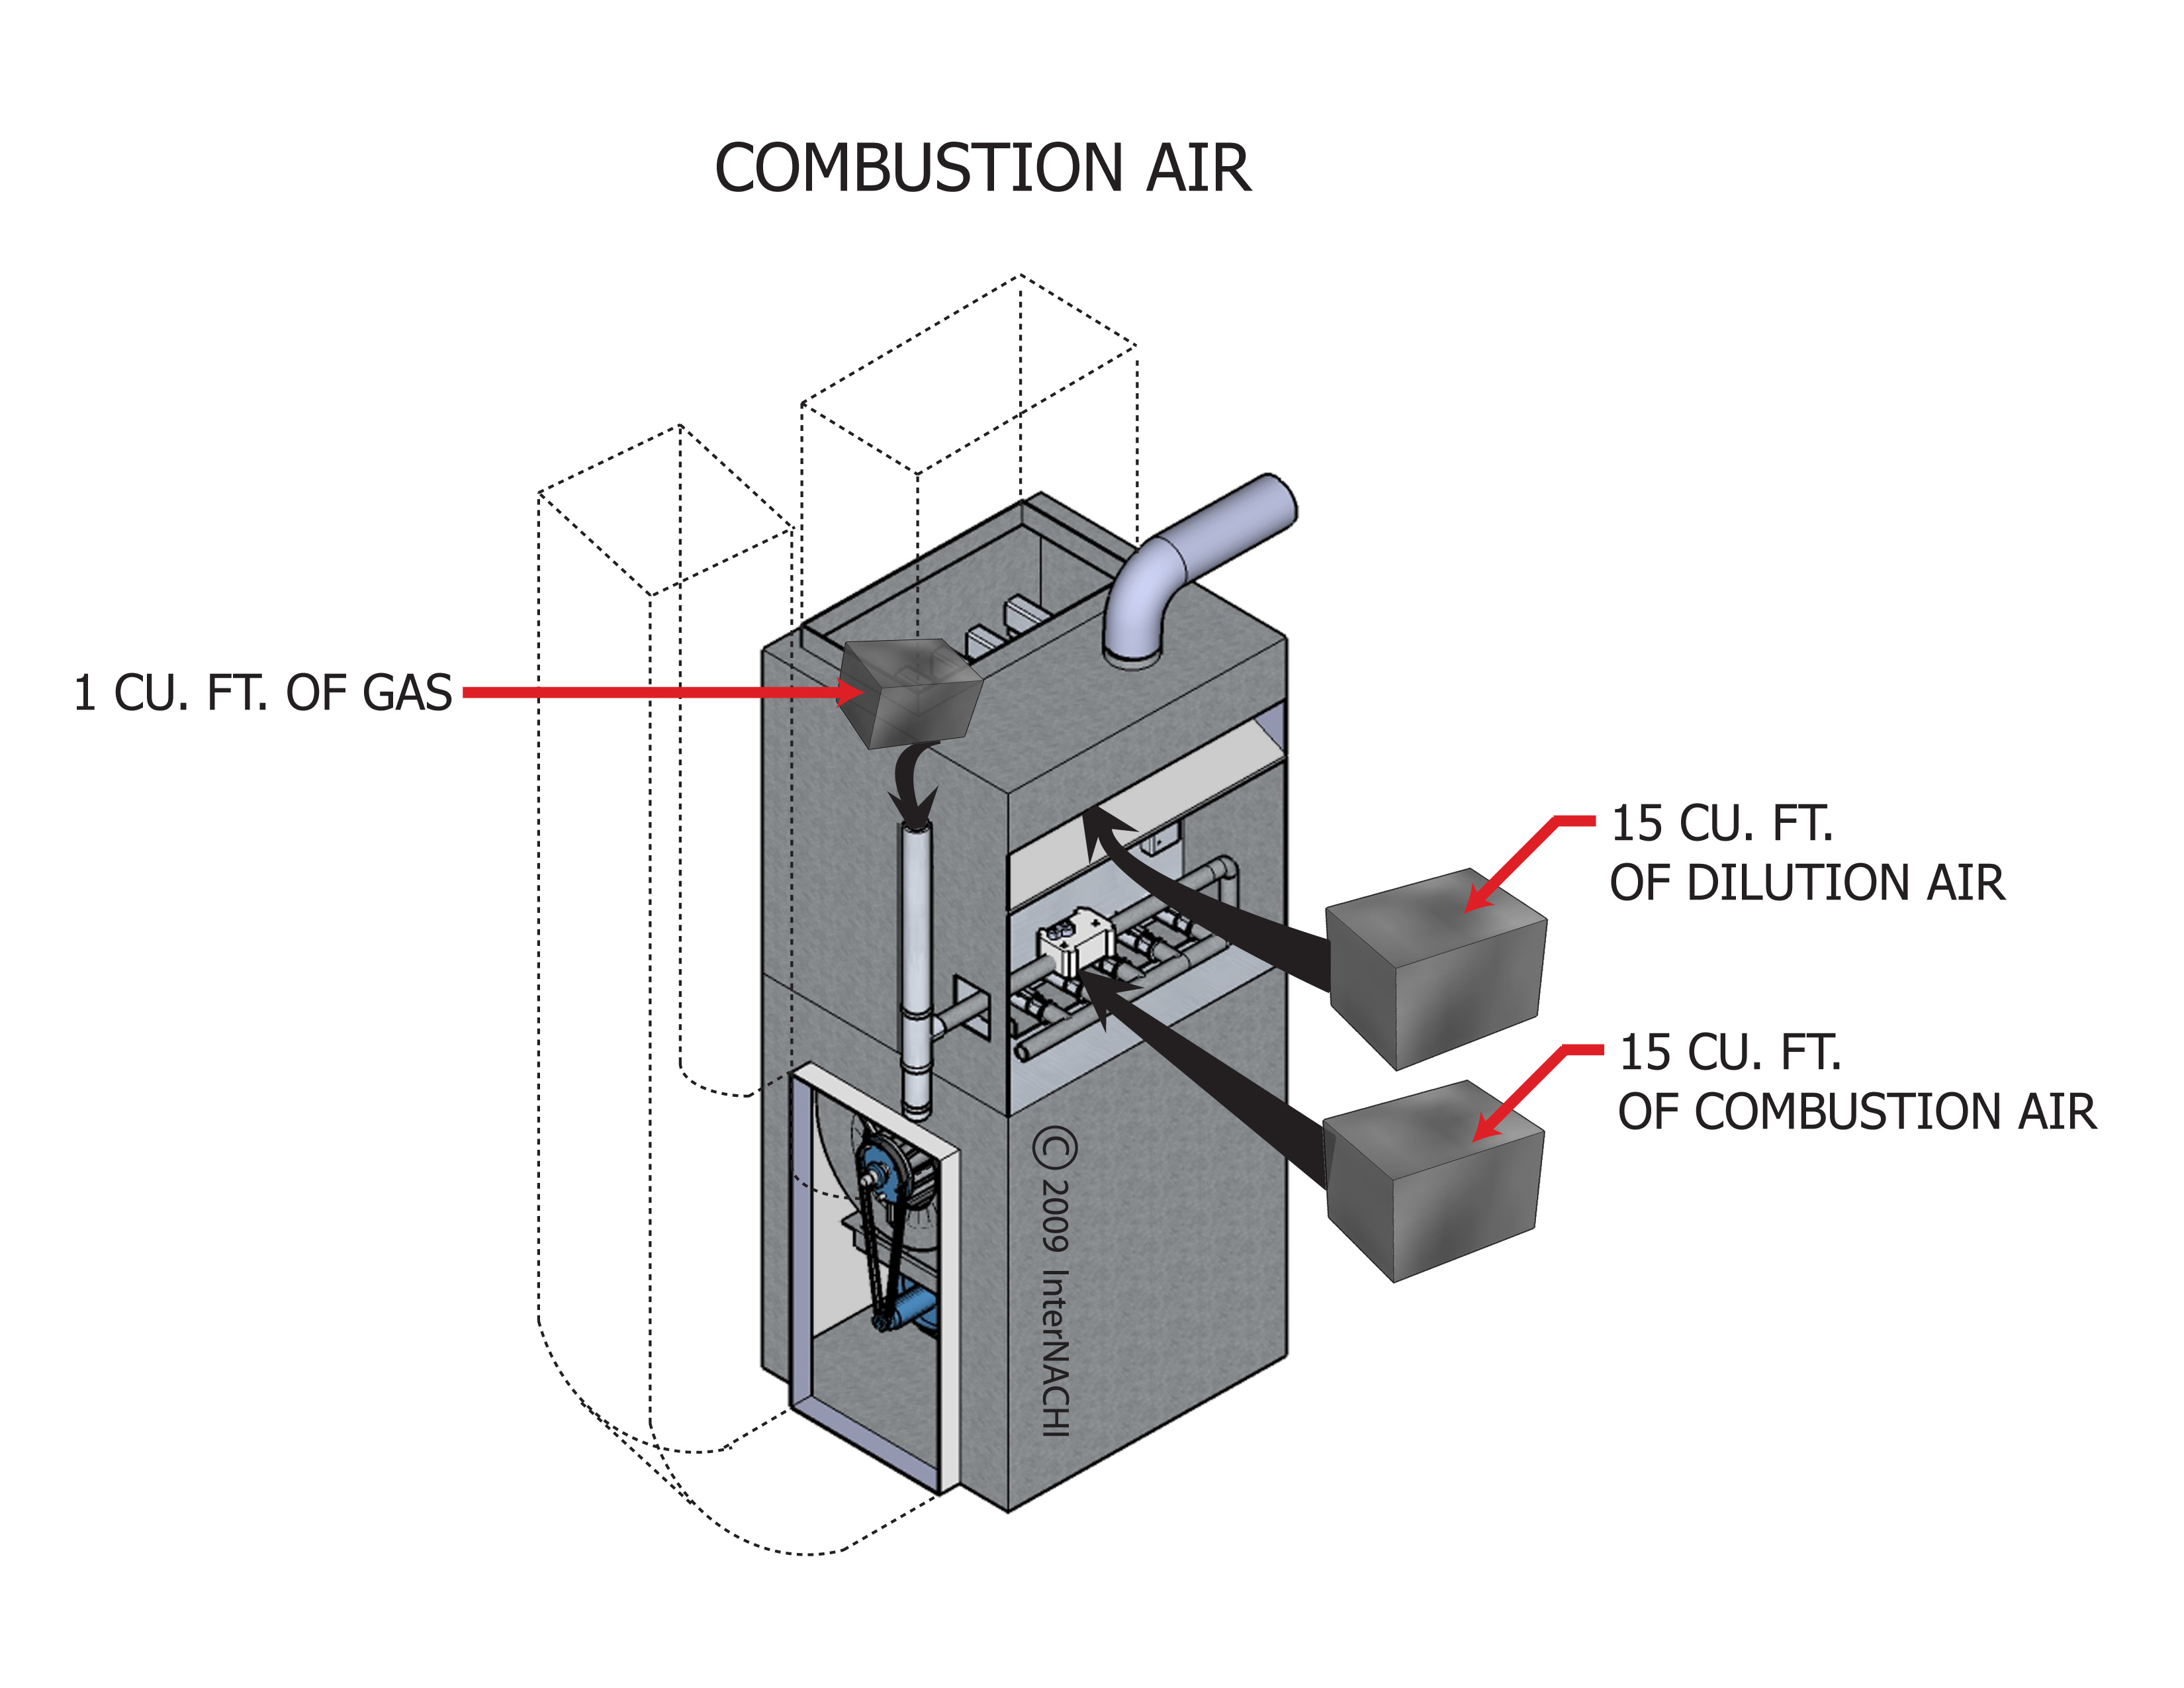 Combustion air.